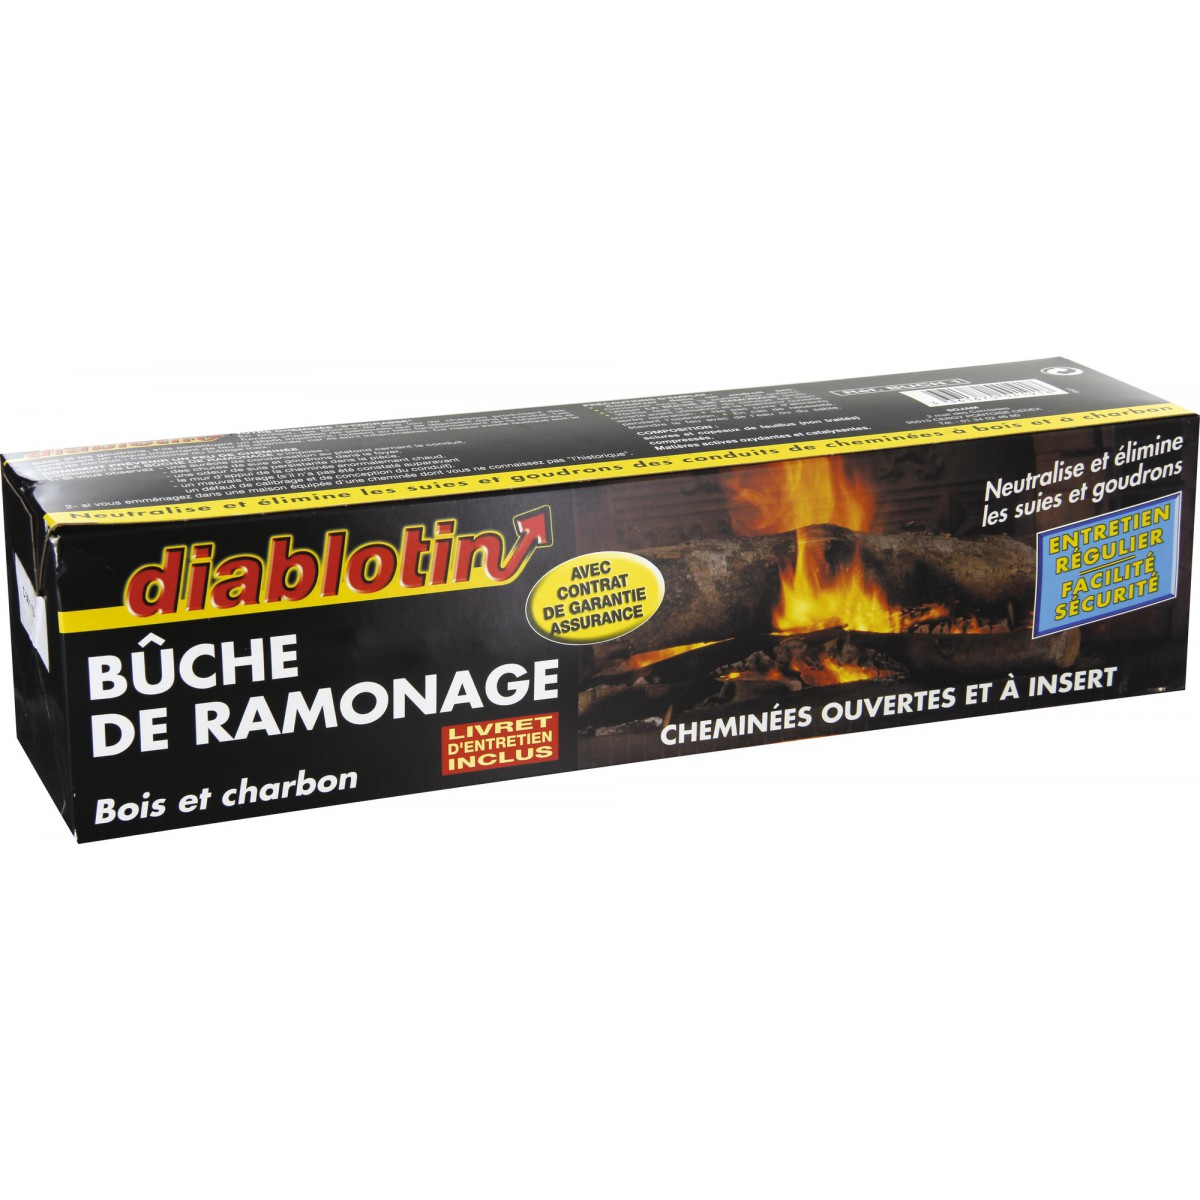 Ramonage Cheminee Vannes Bûche De Ramonage Diablotin